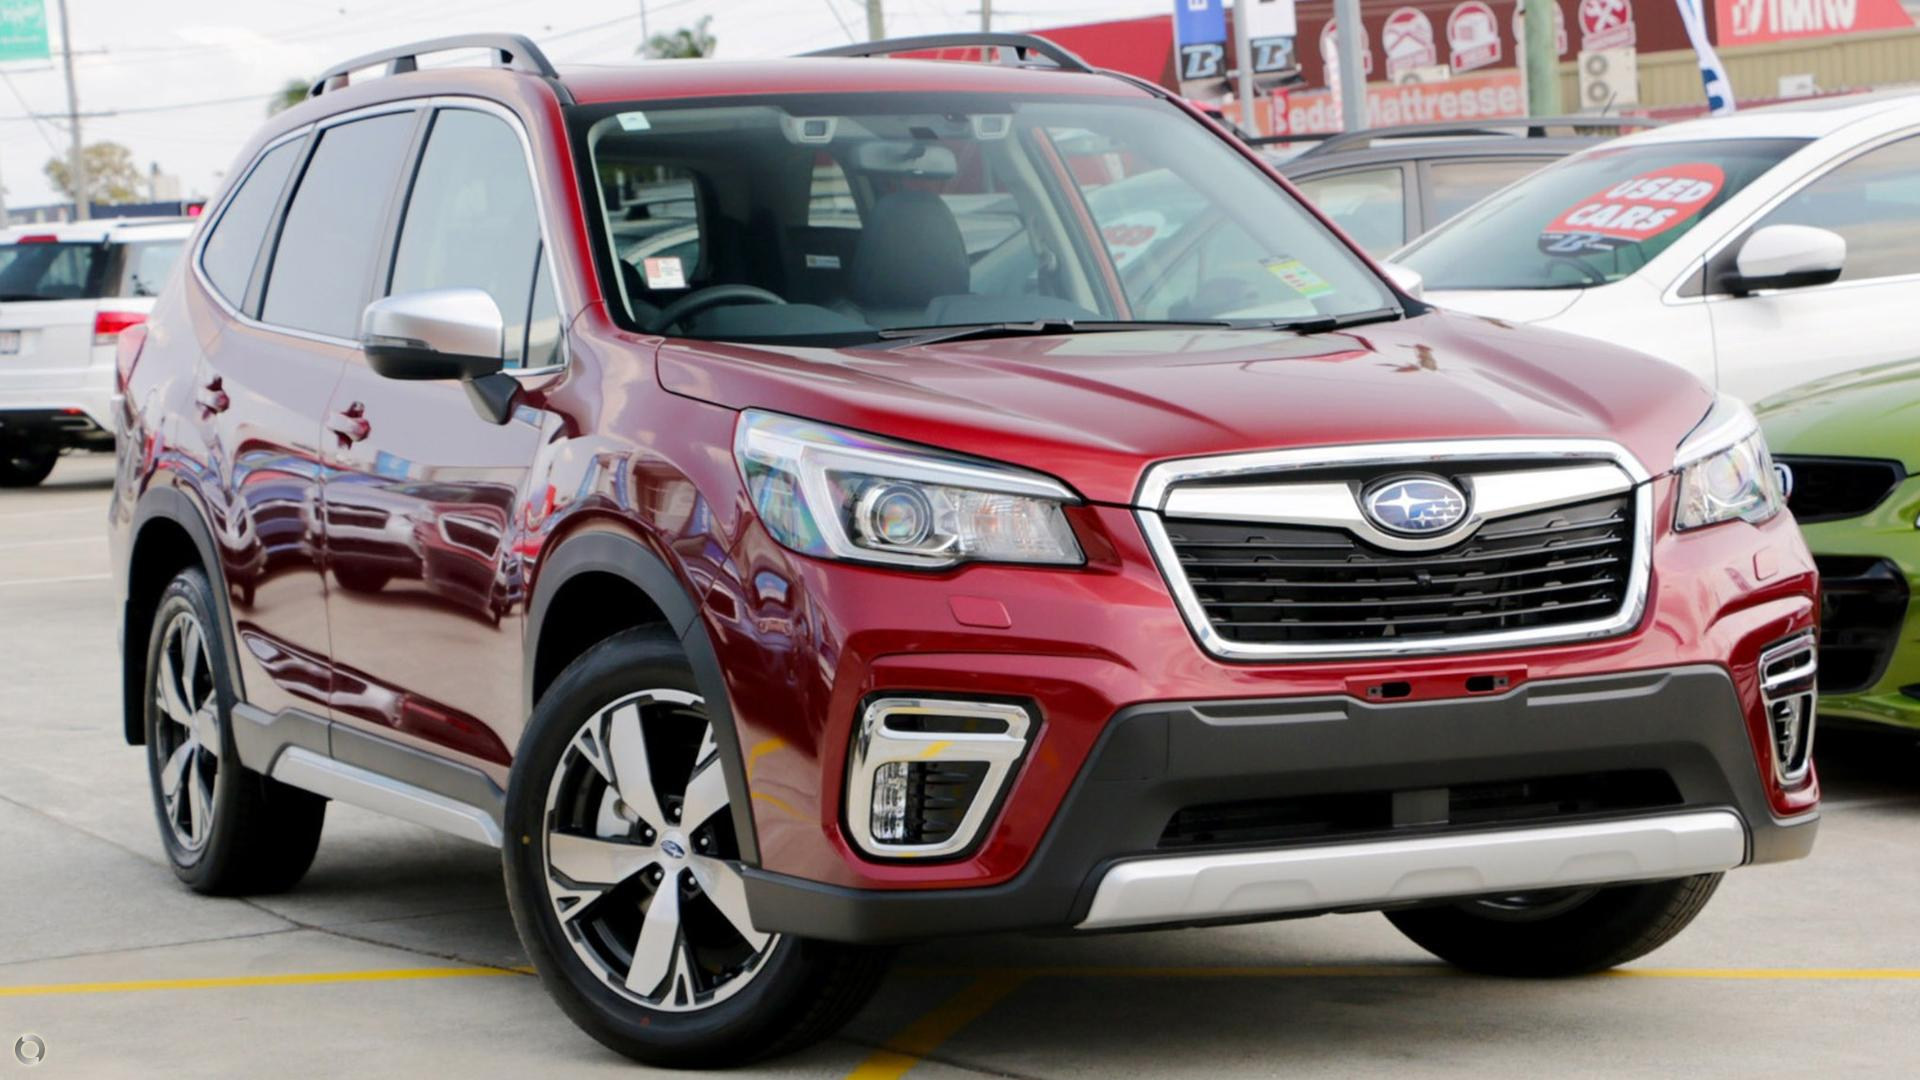 2019 Subaru Forester 2.5i-S S5